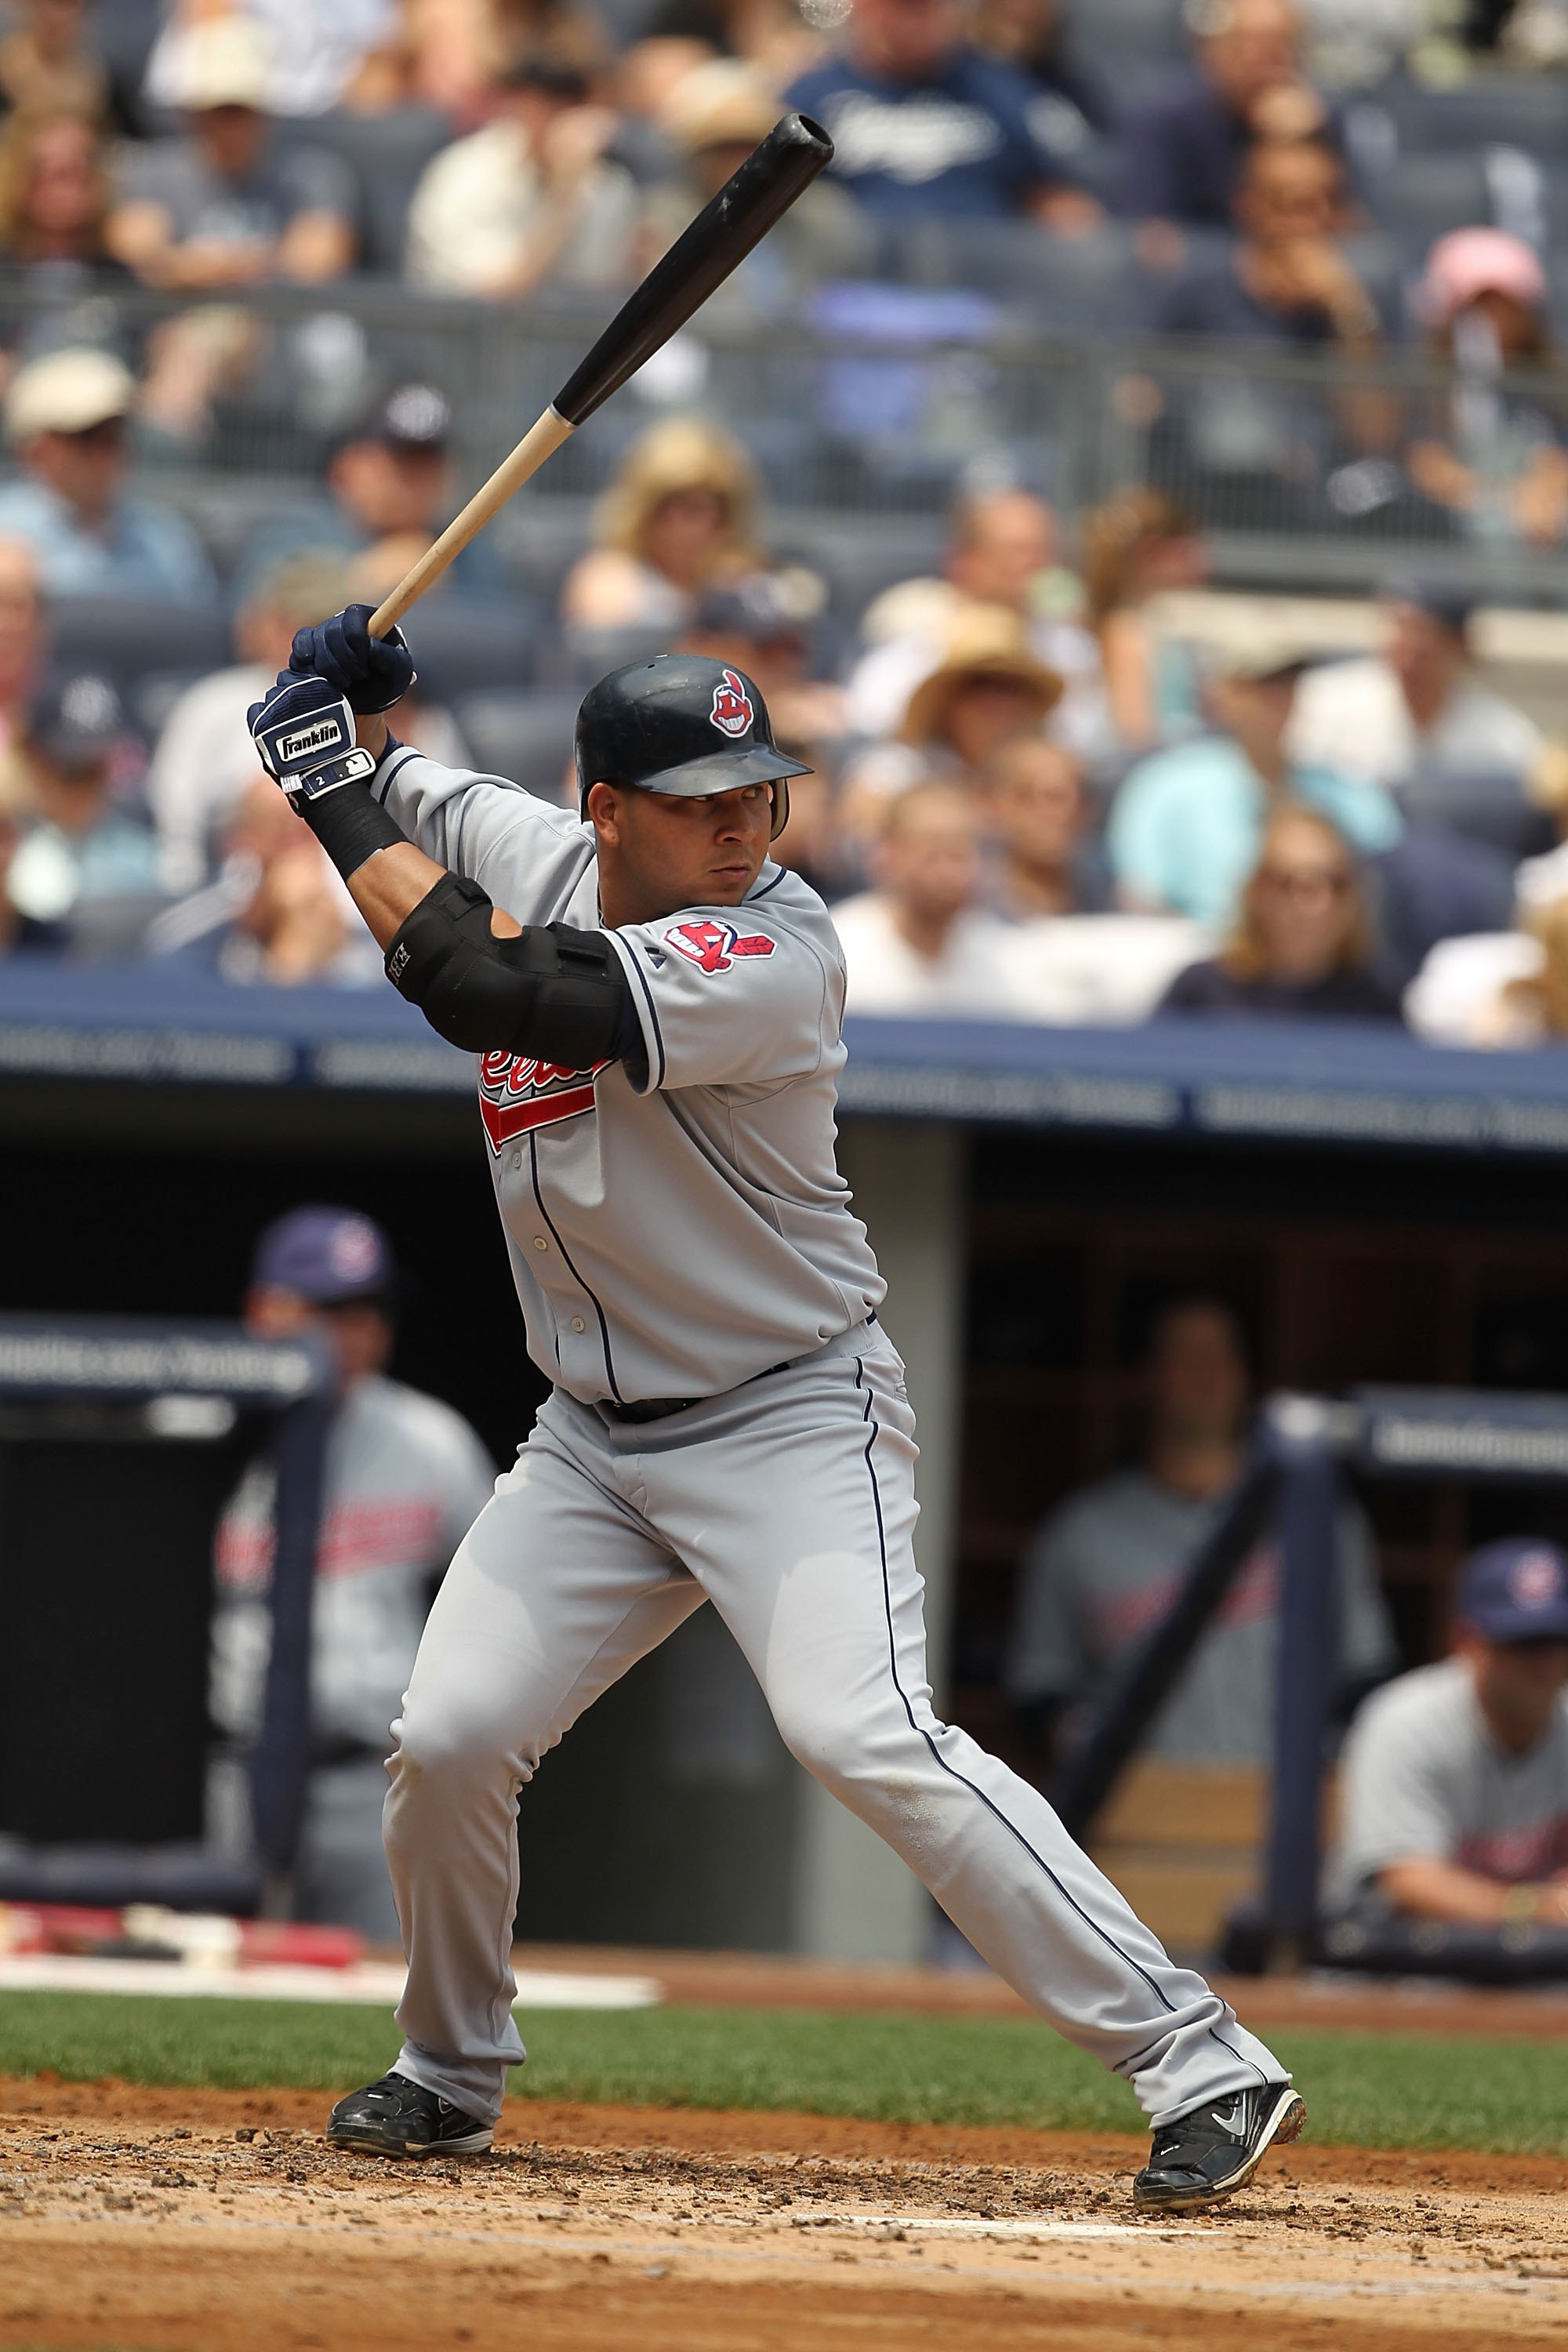 NEW YORK - MAY 29:  Jhonny Peralta #2 of the Cleveland Indians in action against The New York Yankees during their game on May 29, 2010 at Yankee Stadium in the Bronx Borough of New York City.  (Photo by Al Bello/Getty Images)